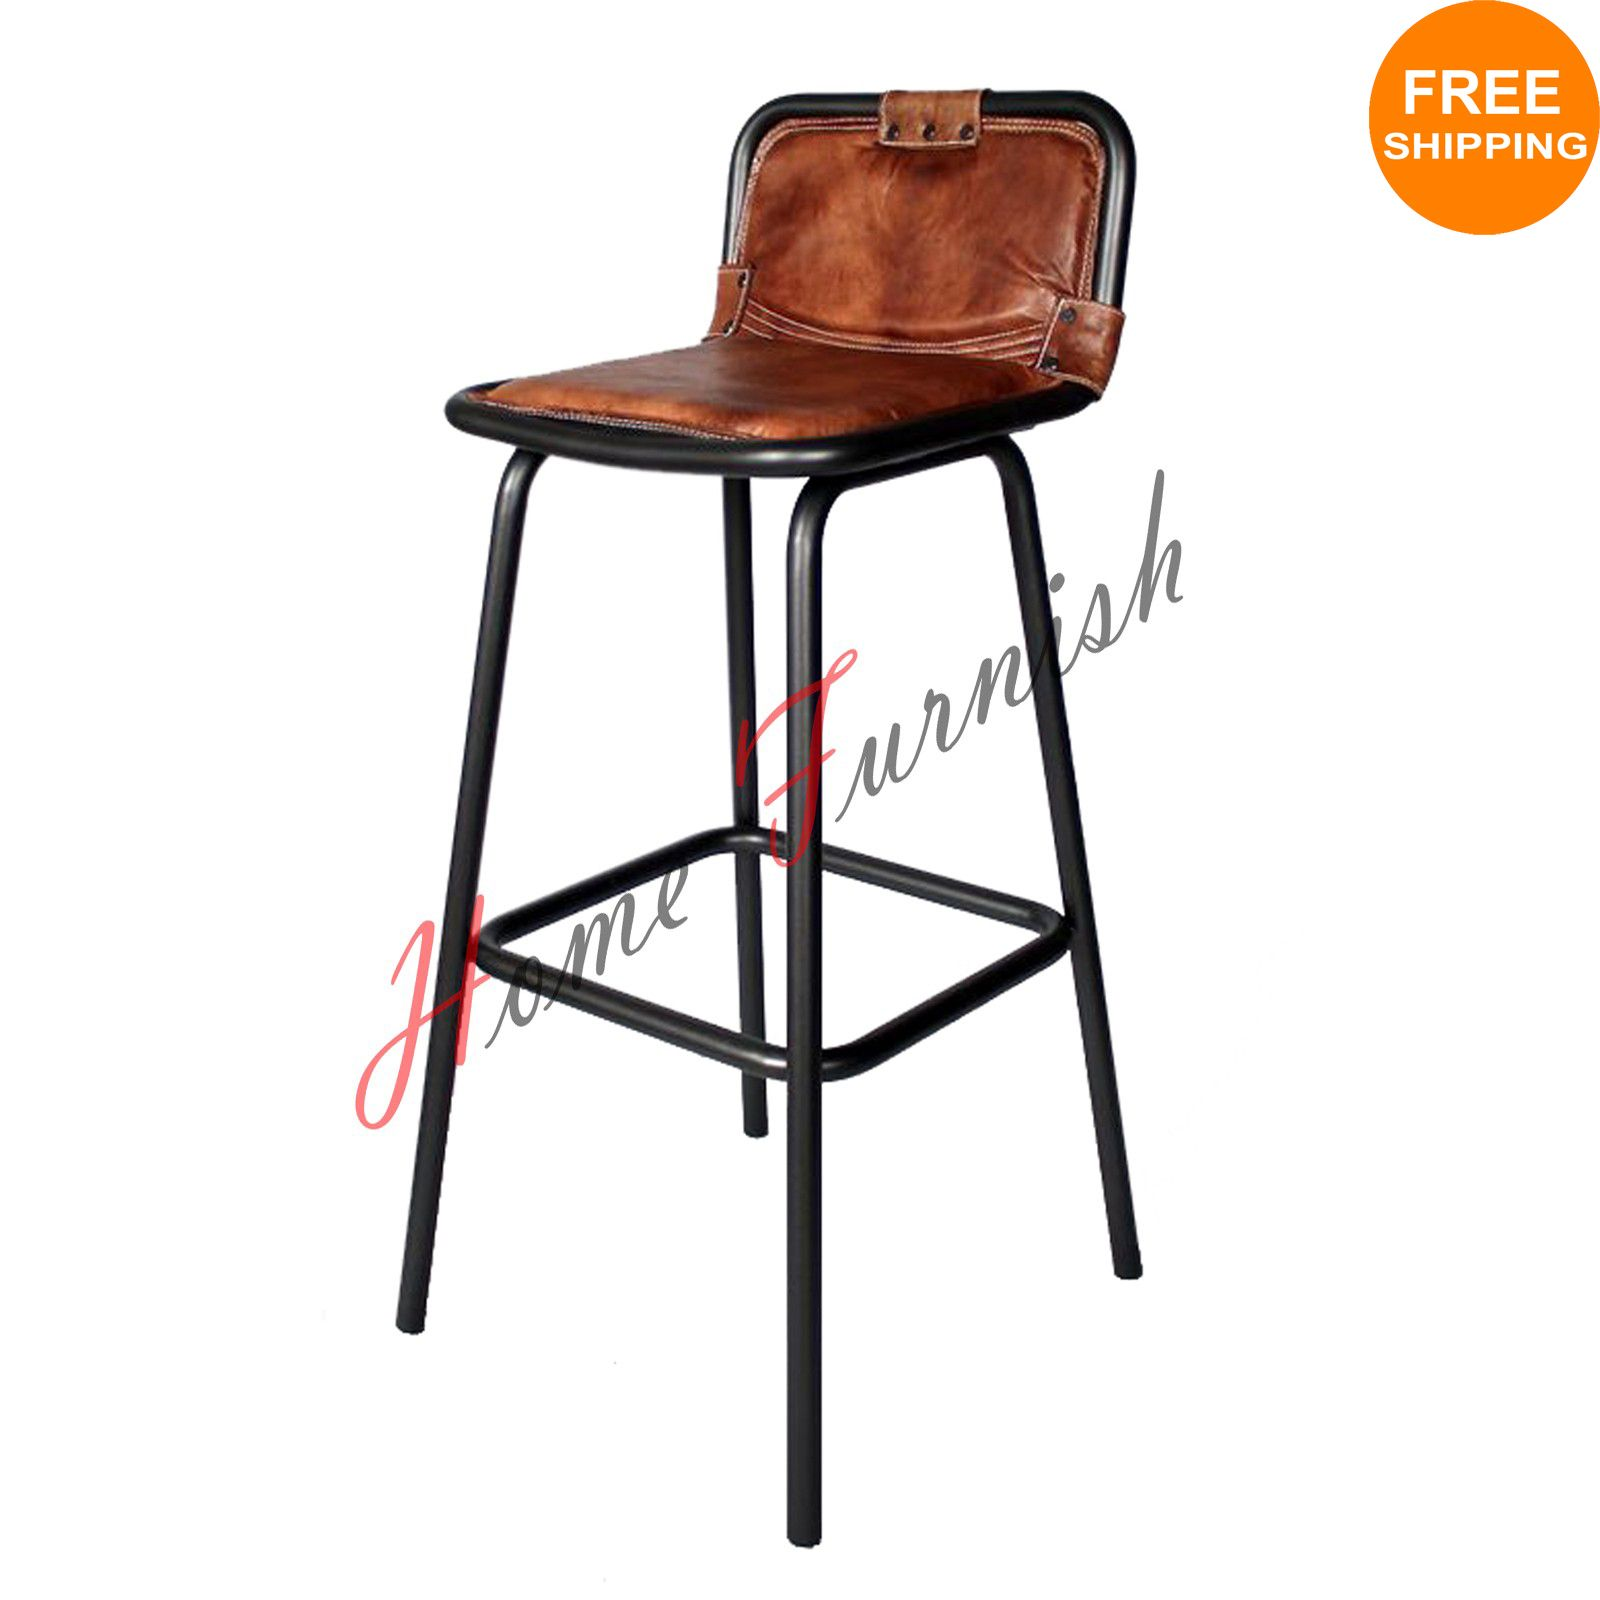 w klein leather back tall stools bar brown barstool plantation stool